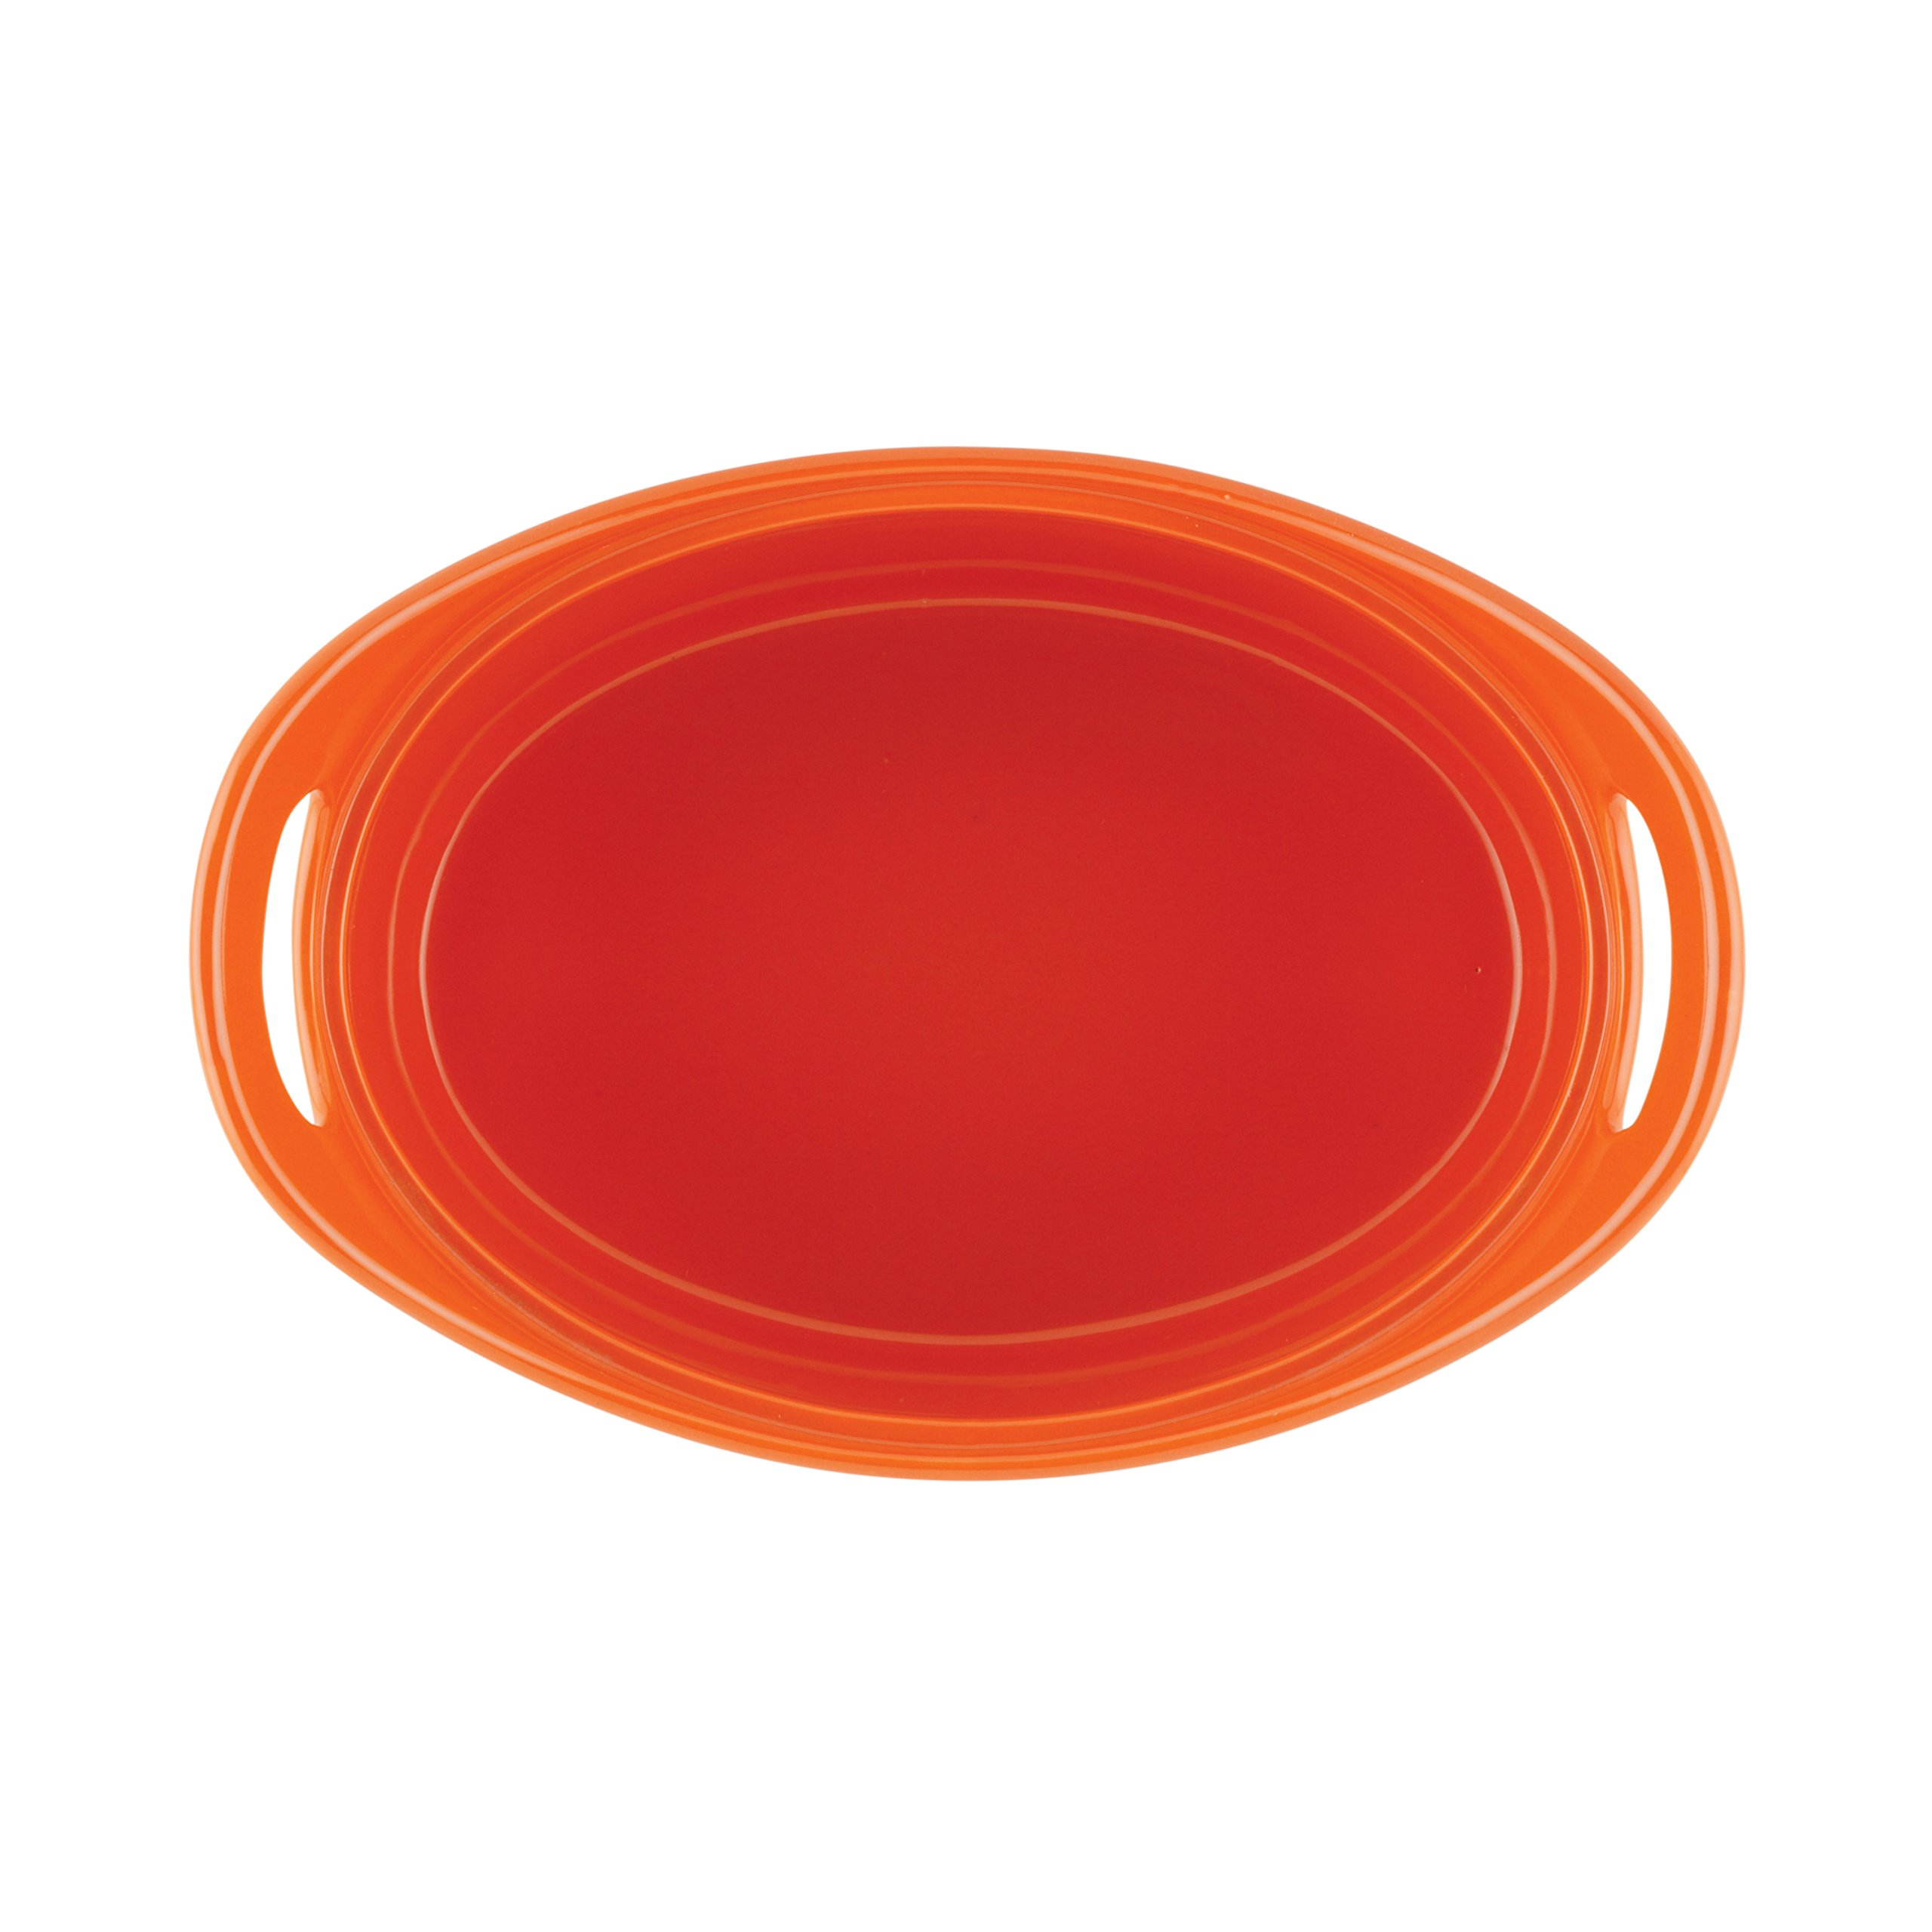 Rachael Ray Stoneware 1.25- and 2.25-Quart Bubble & Brown Oval Baker Set, Orange by Rachael Ray (Image #5)